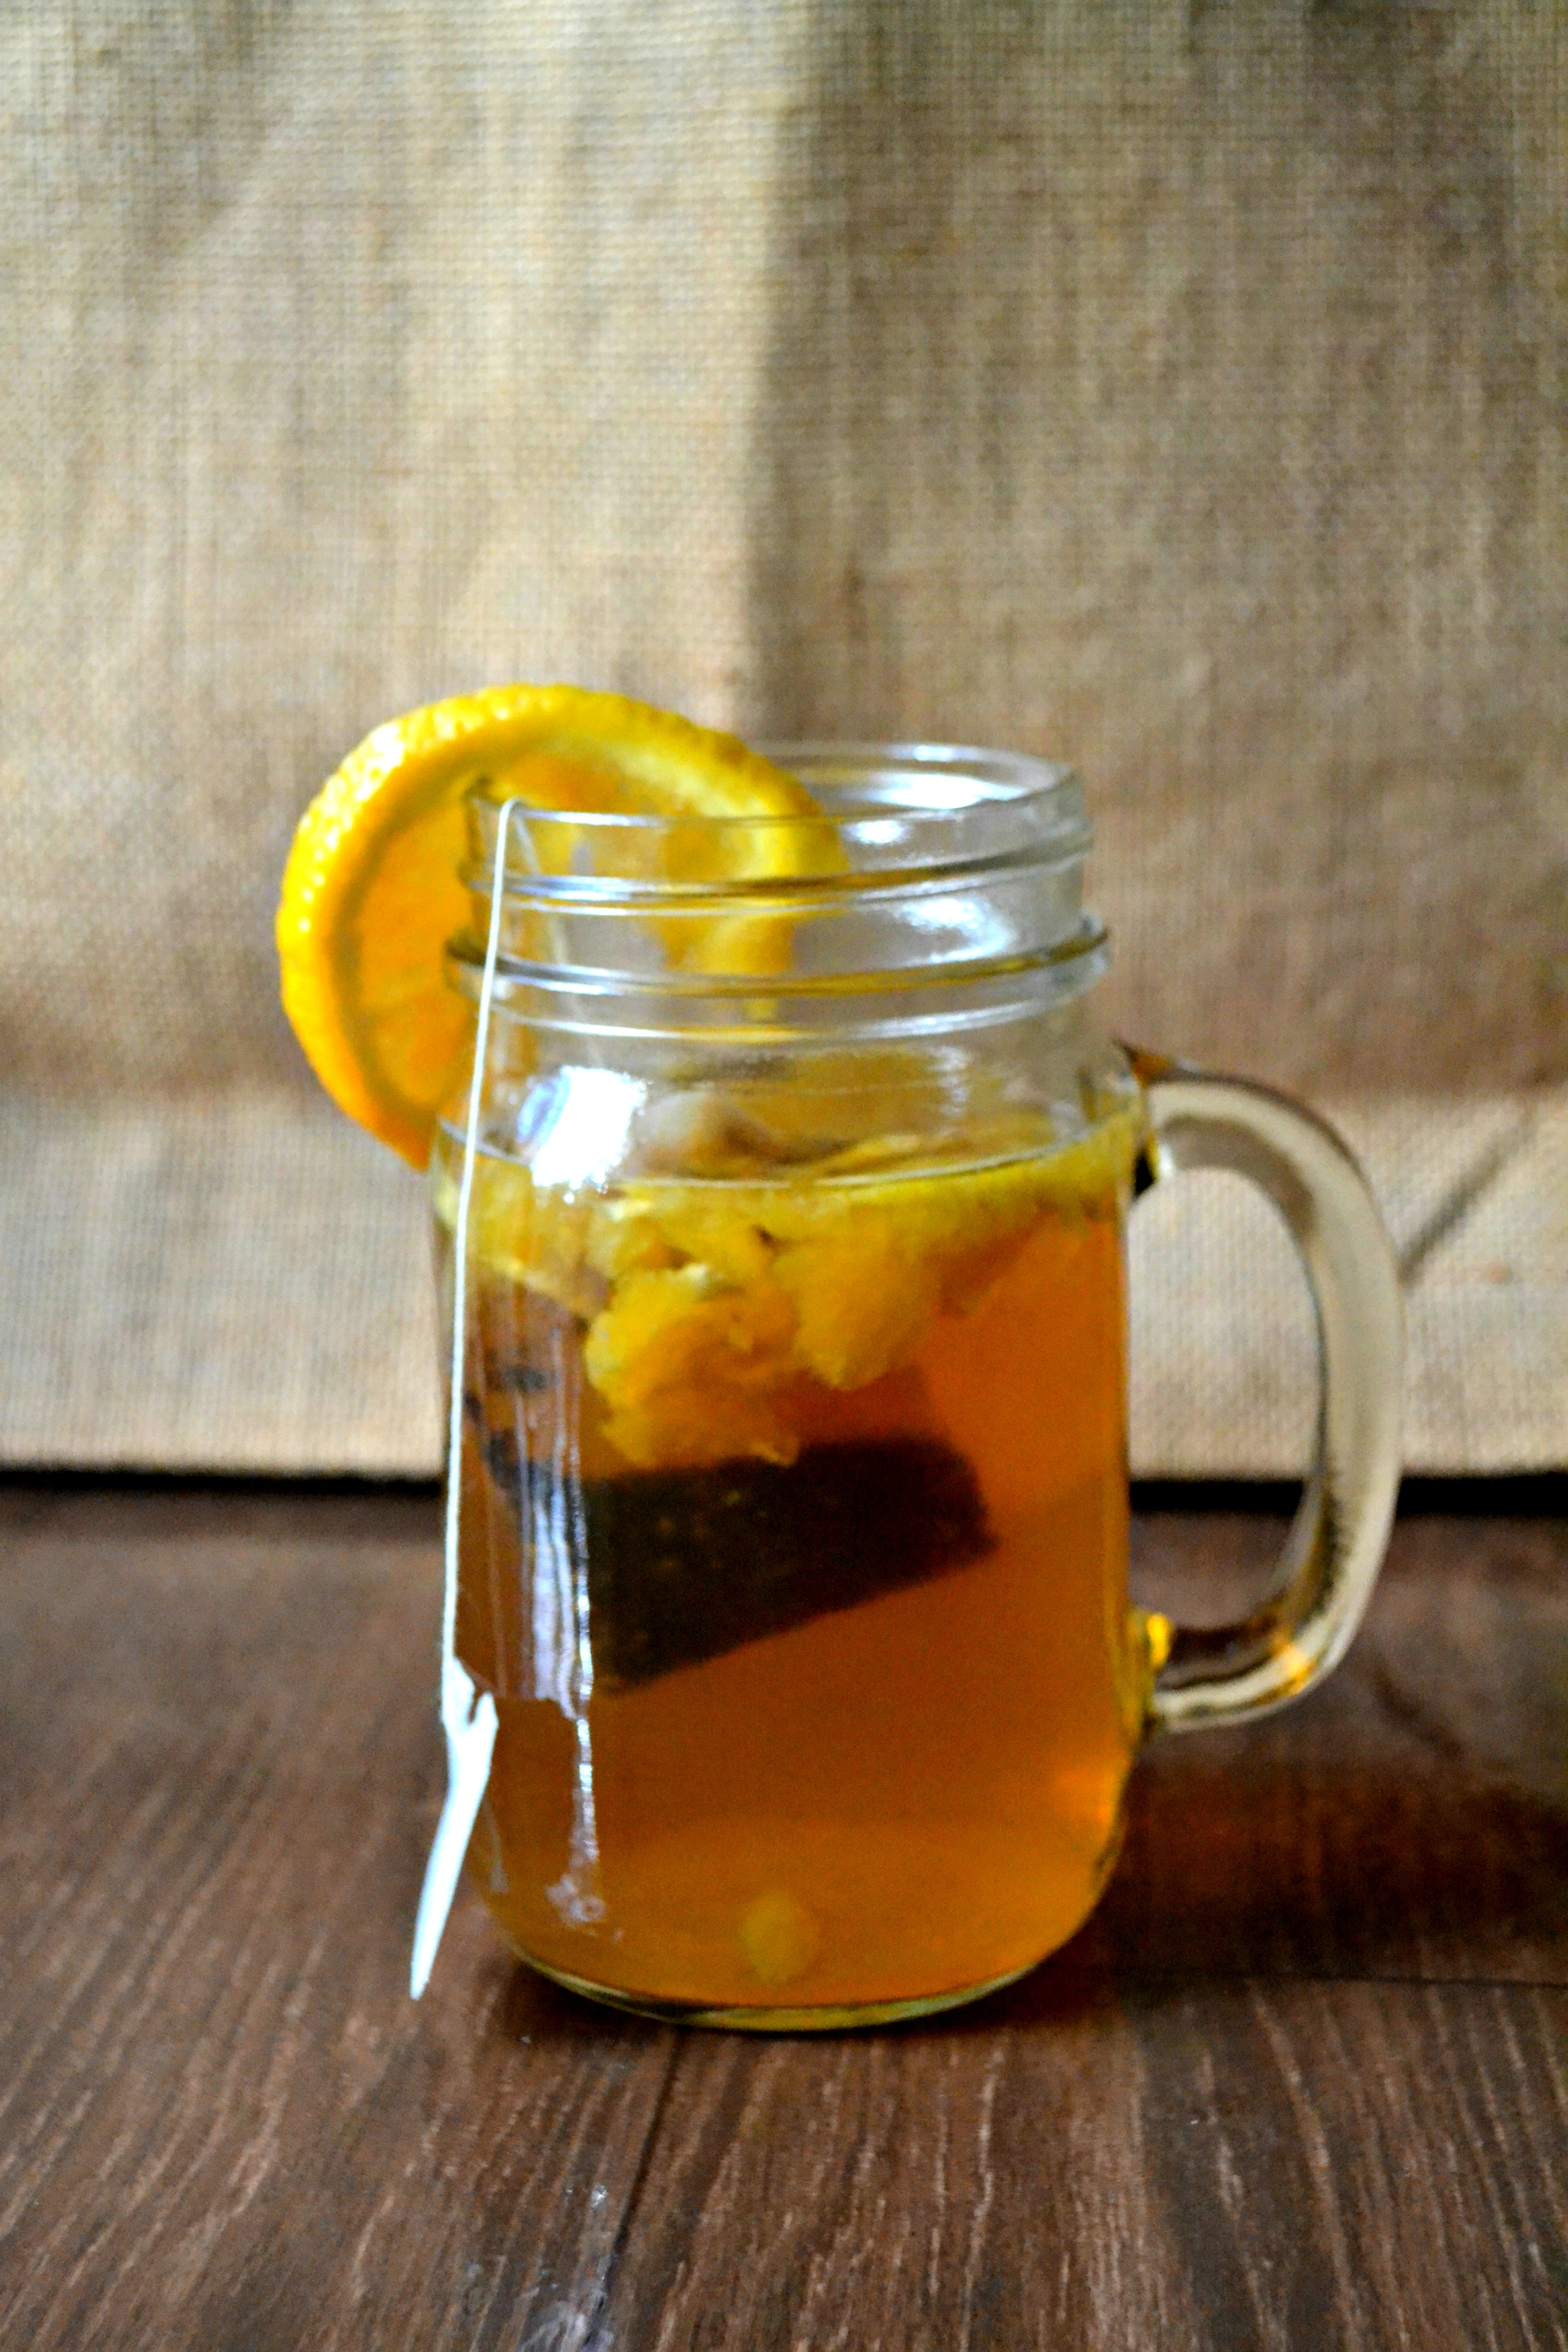 Honey & Orange Pumpkin Spice Sweet Tea  -   This can be enjoyed hot or cold, but if you're not feeling well, hot is the best way to go, and cold is great for just wanting sweet tea.